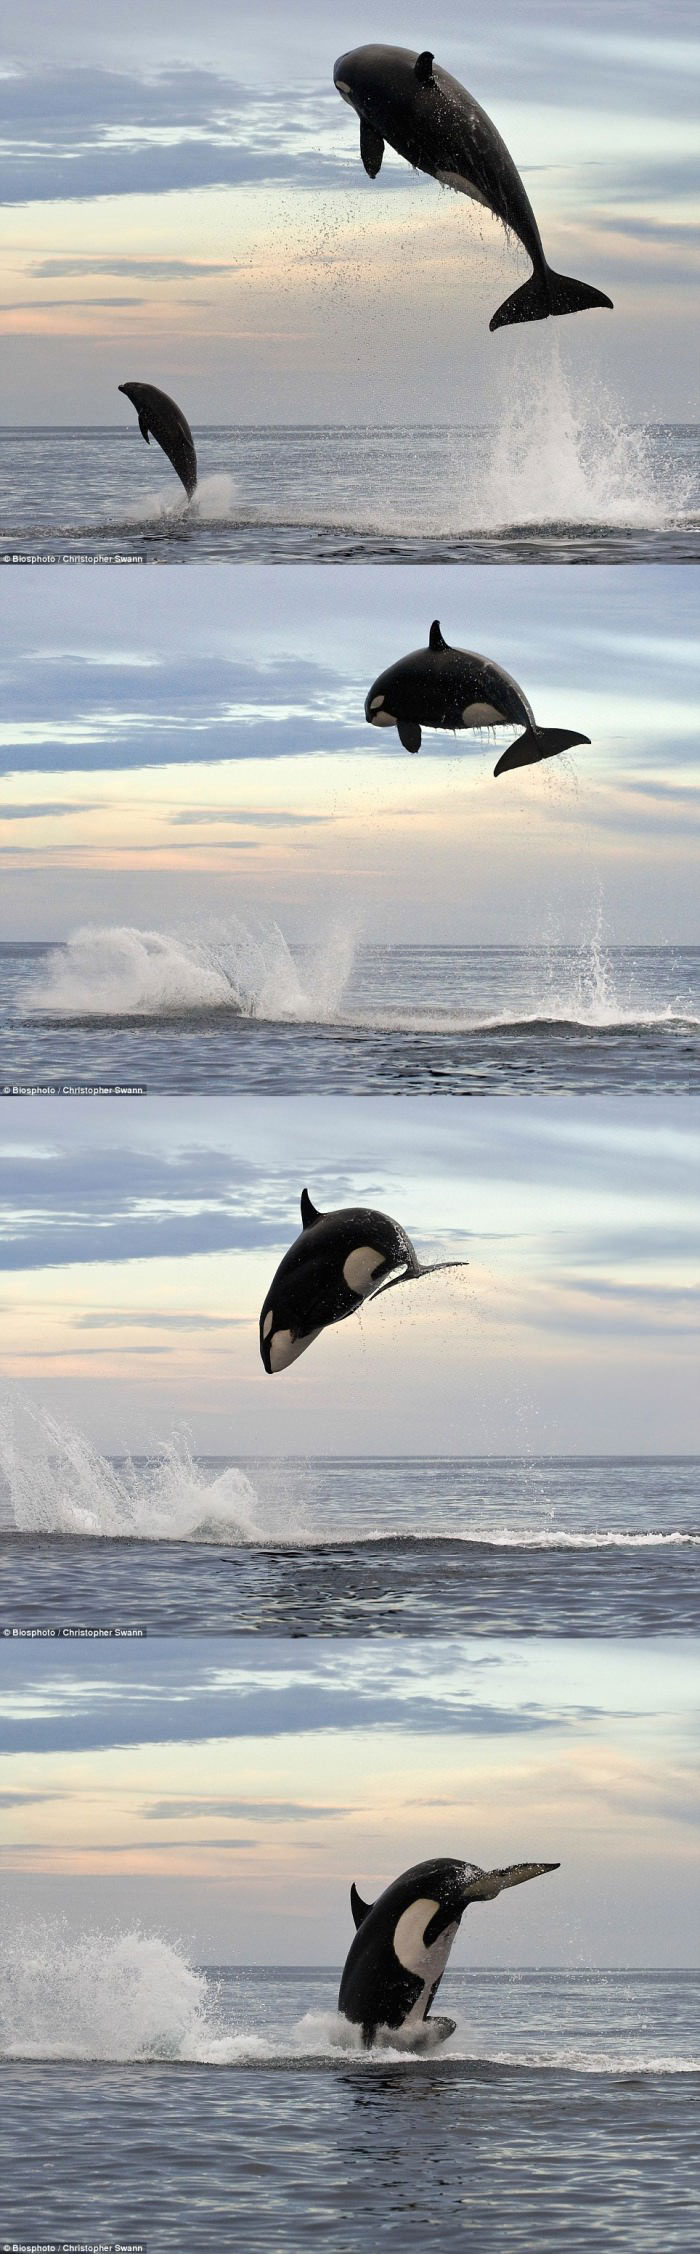 killer whale jumps 15 feet into the air while chasing dolphin, impressive